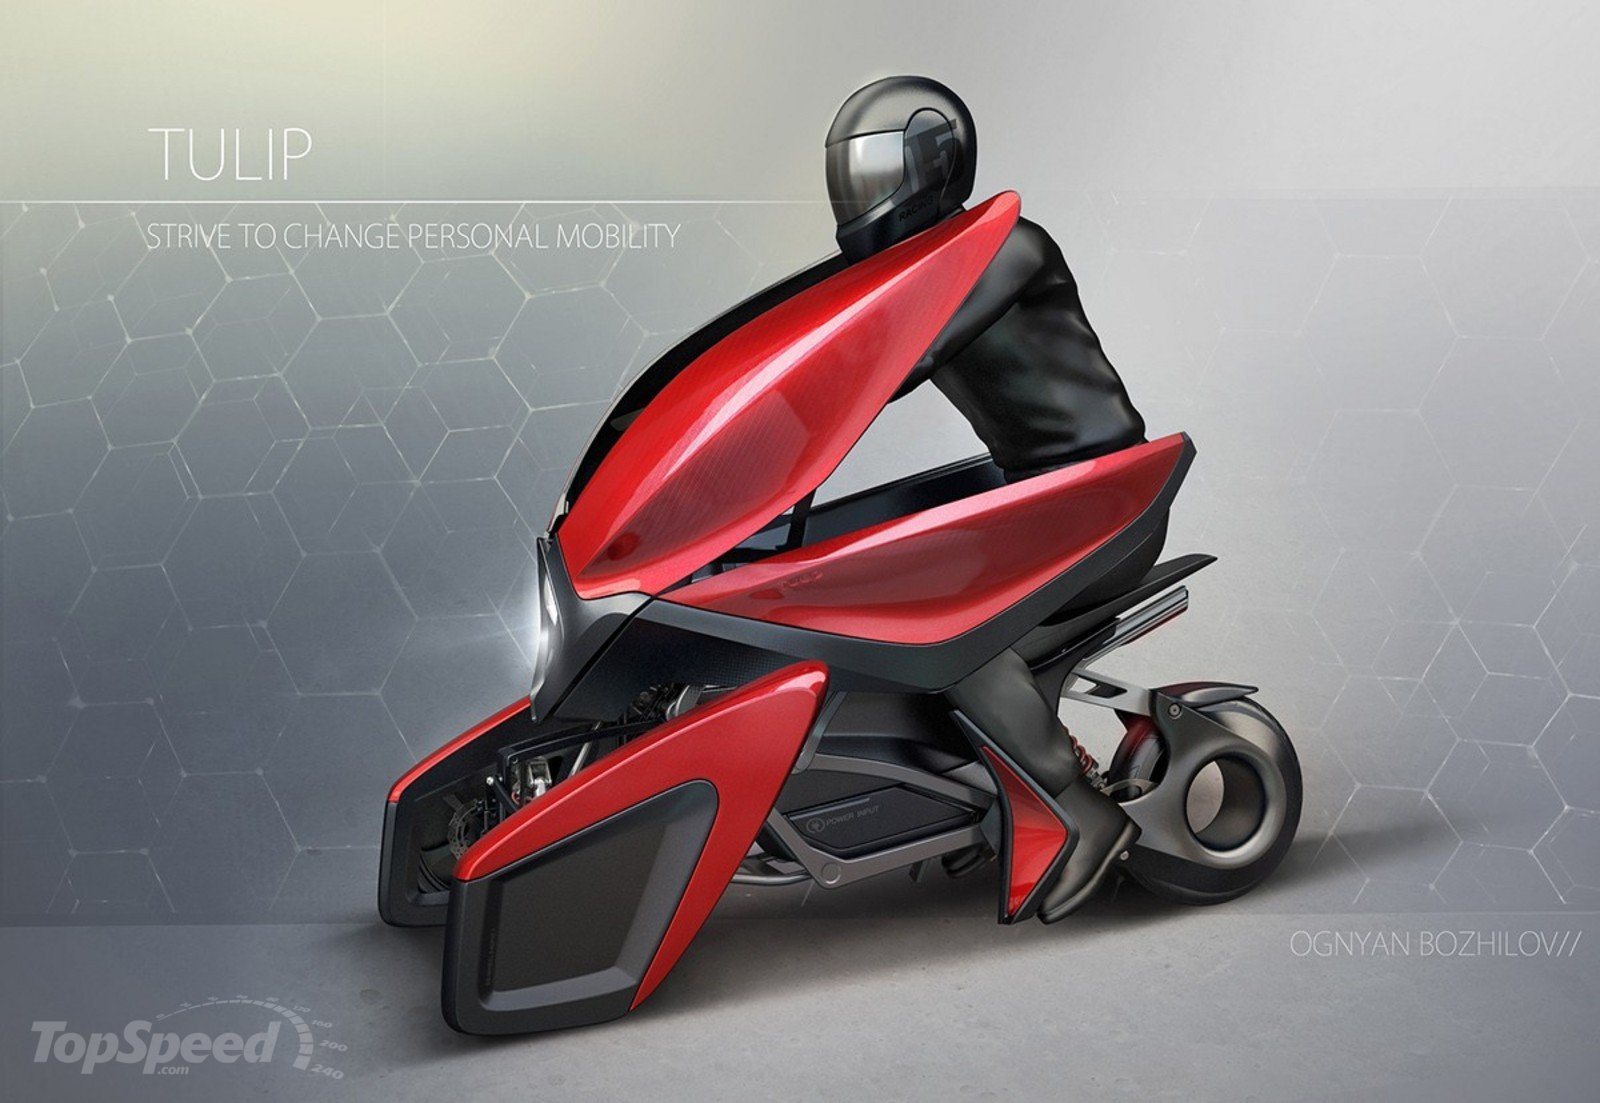 Tulip Three Wheel Electric Scooter Concept Is An Eye